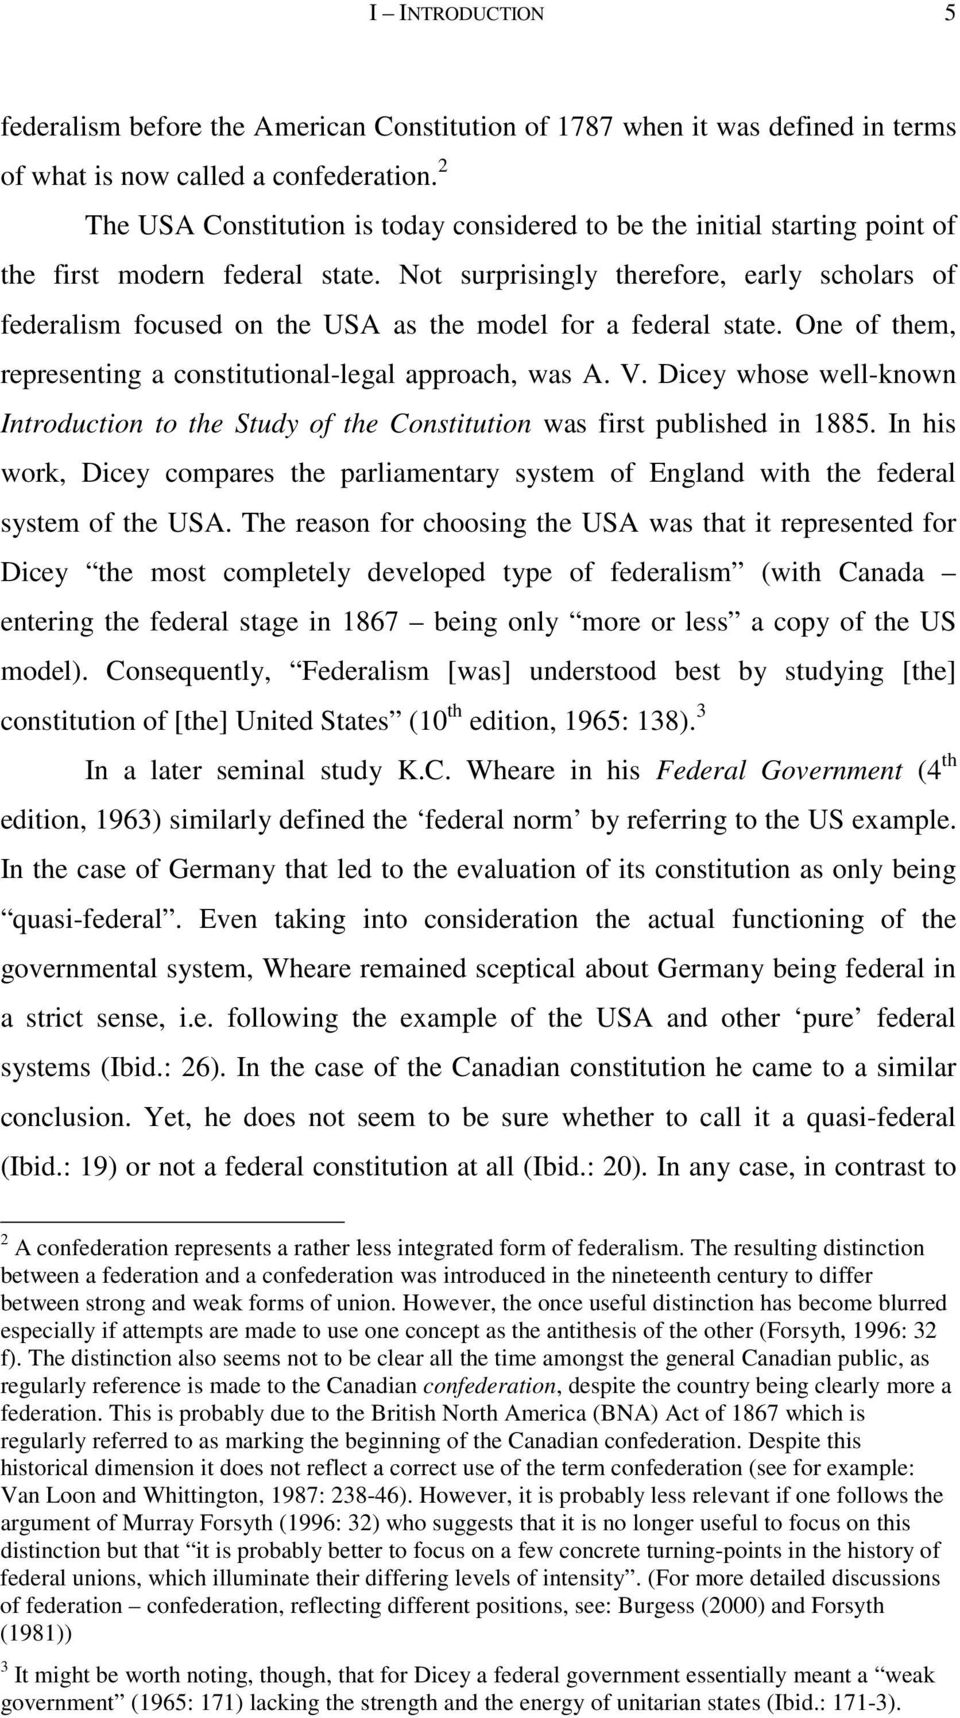 Not surprisingly therefore, early scholars of federalism focused on the USA as the model for a federal state. One of them, representing a constitutional-legal approach, was A. V.